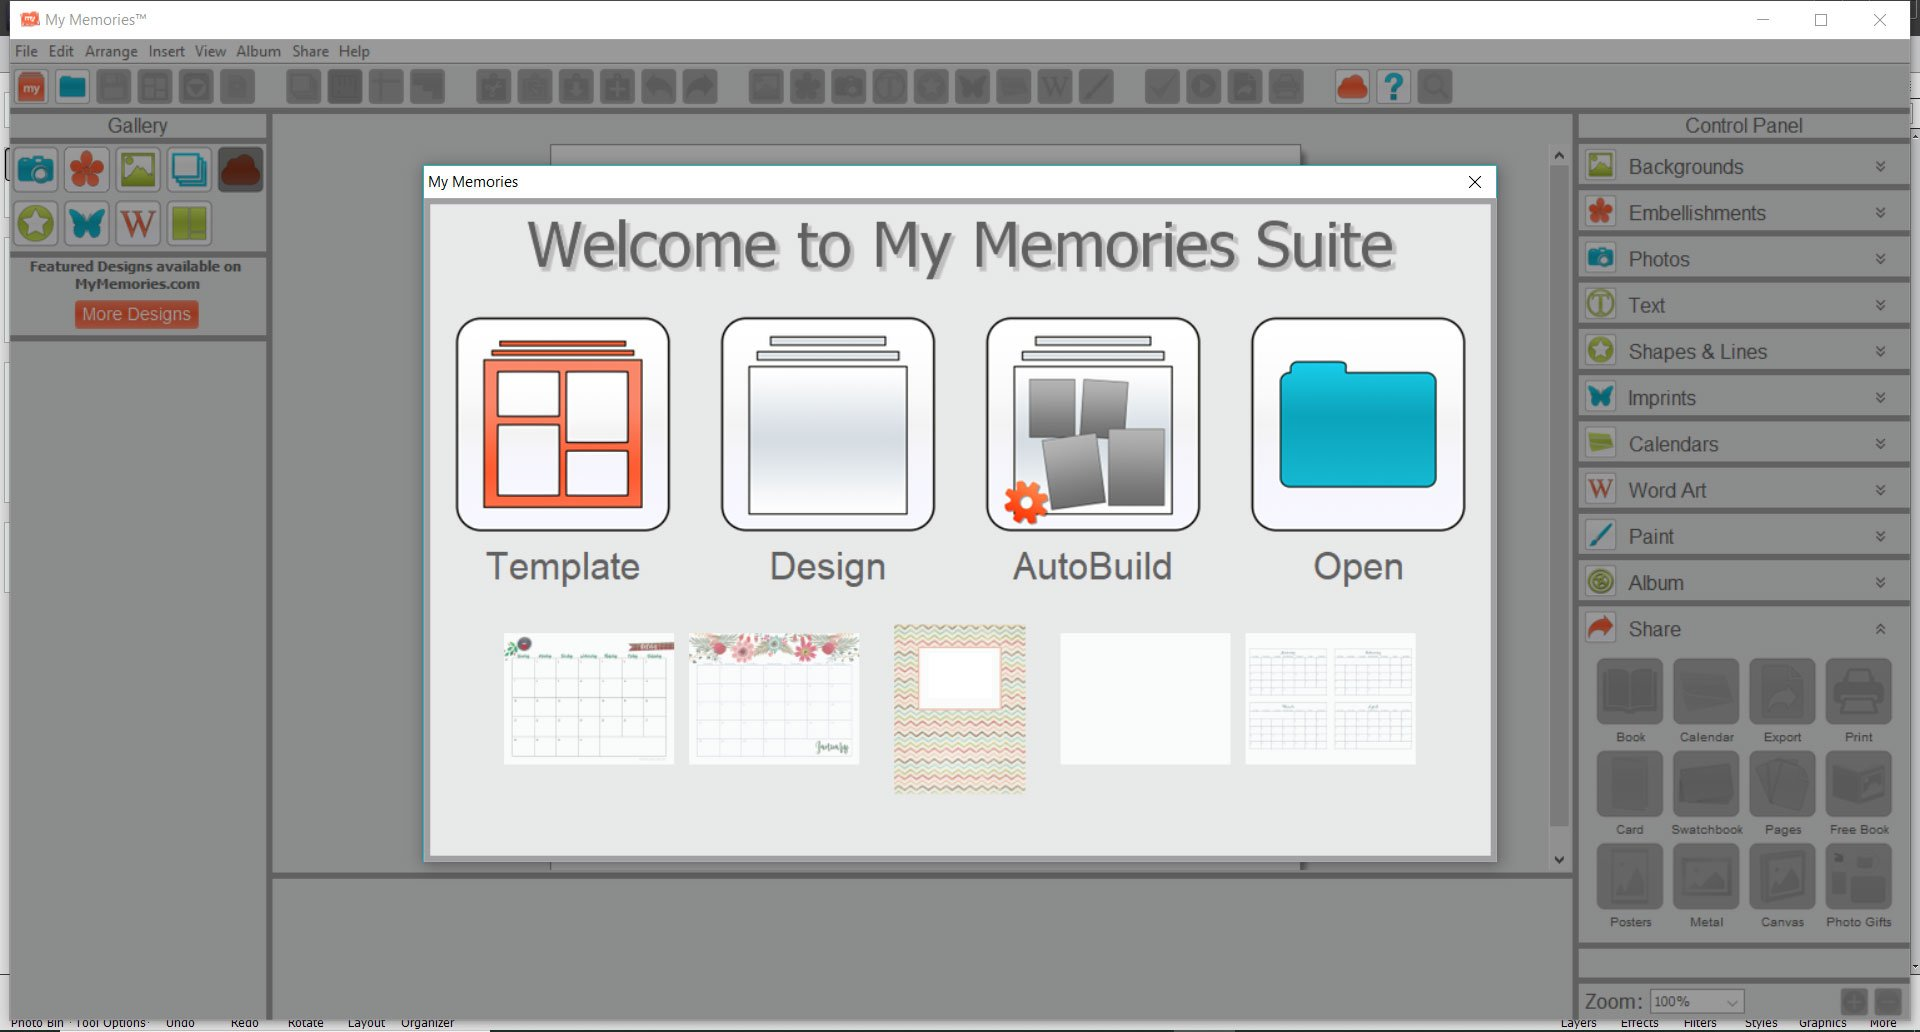 My Memories Suite opening screen